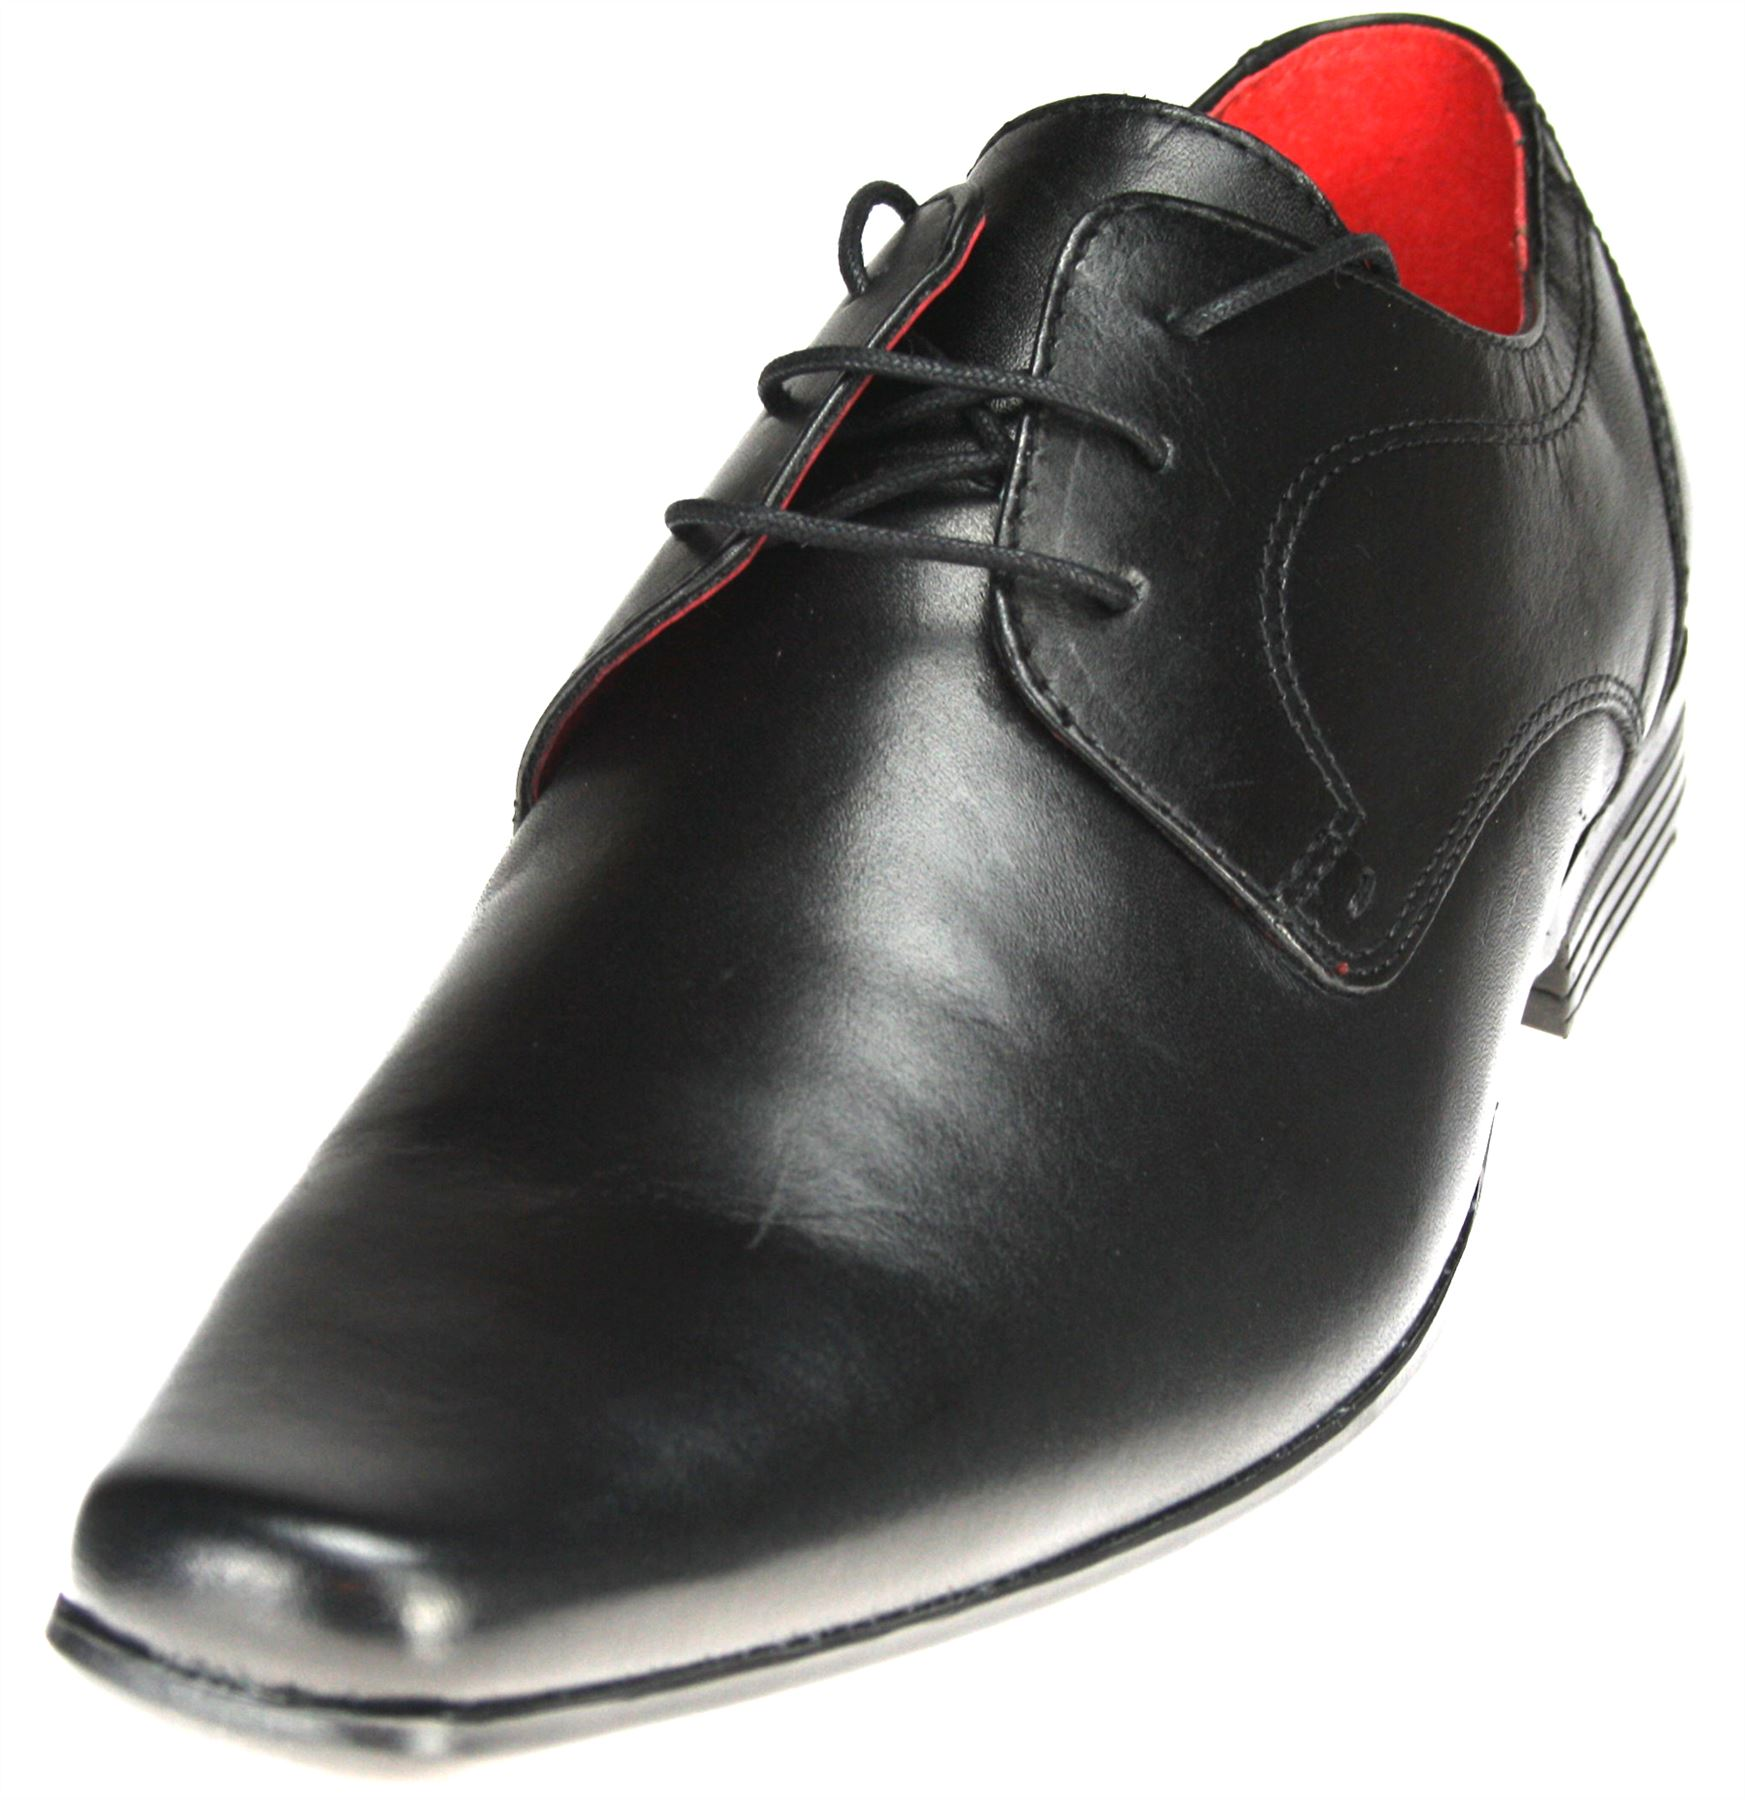 Kingston Shoes Leather